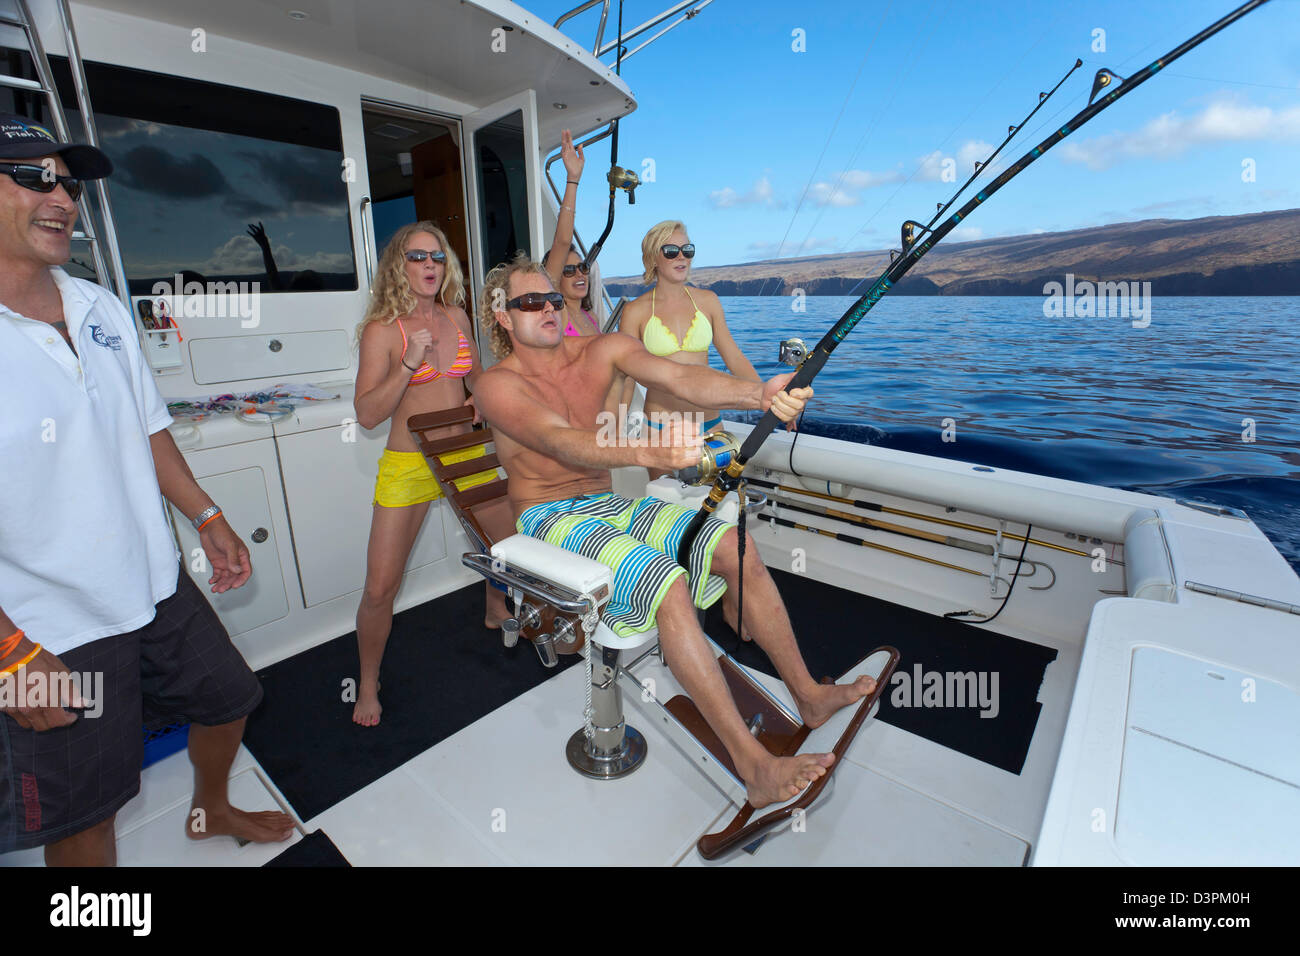 The crew and clients on a sportfishing charter boat off the island of Lanai, reeling in a fish, Hawaii. - Stock Image